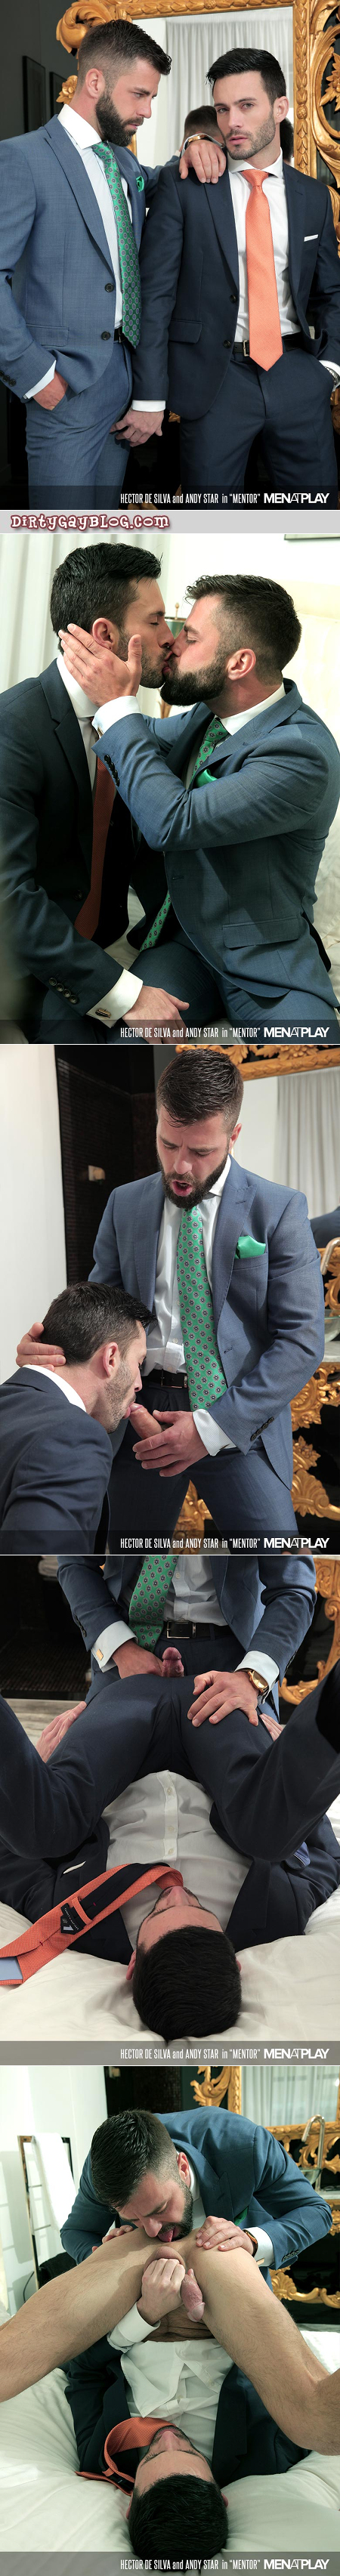 Gay businessman having sex with his hunky male mentor.